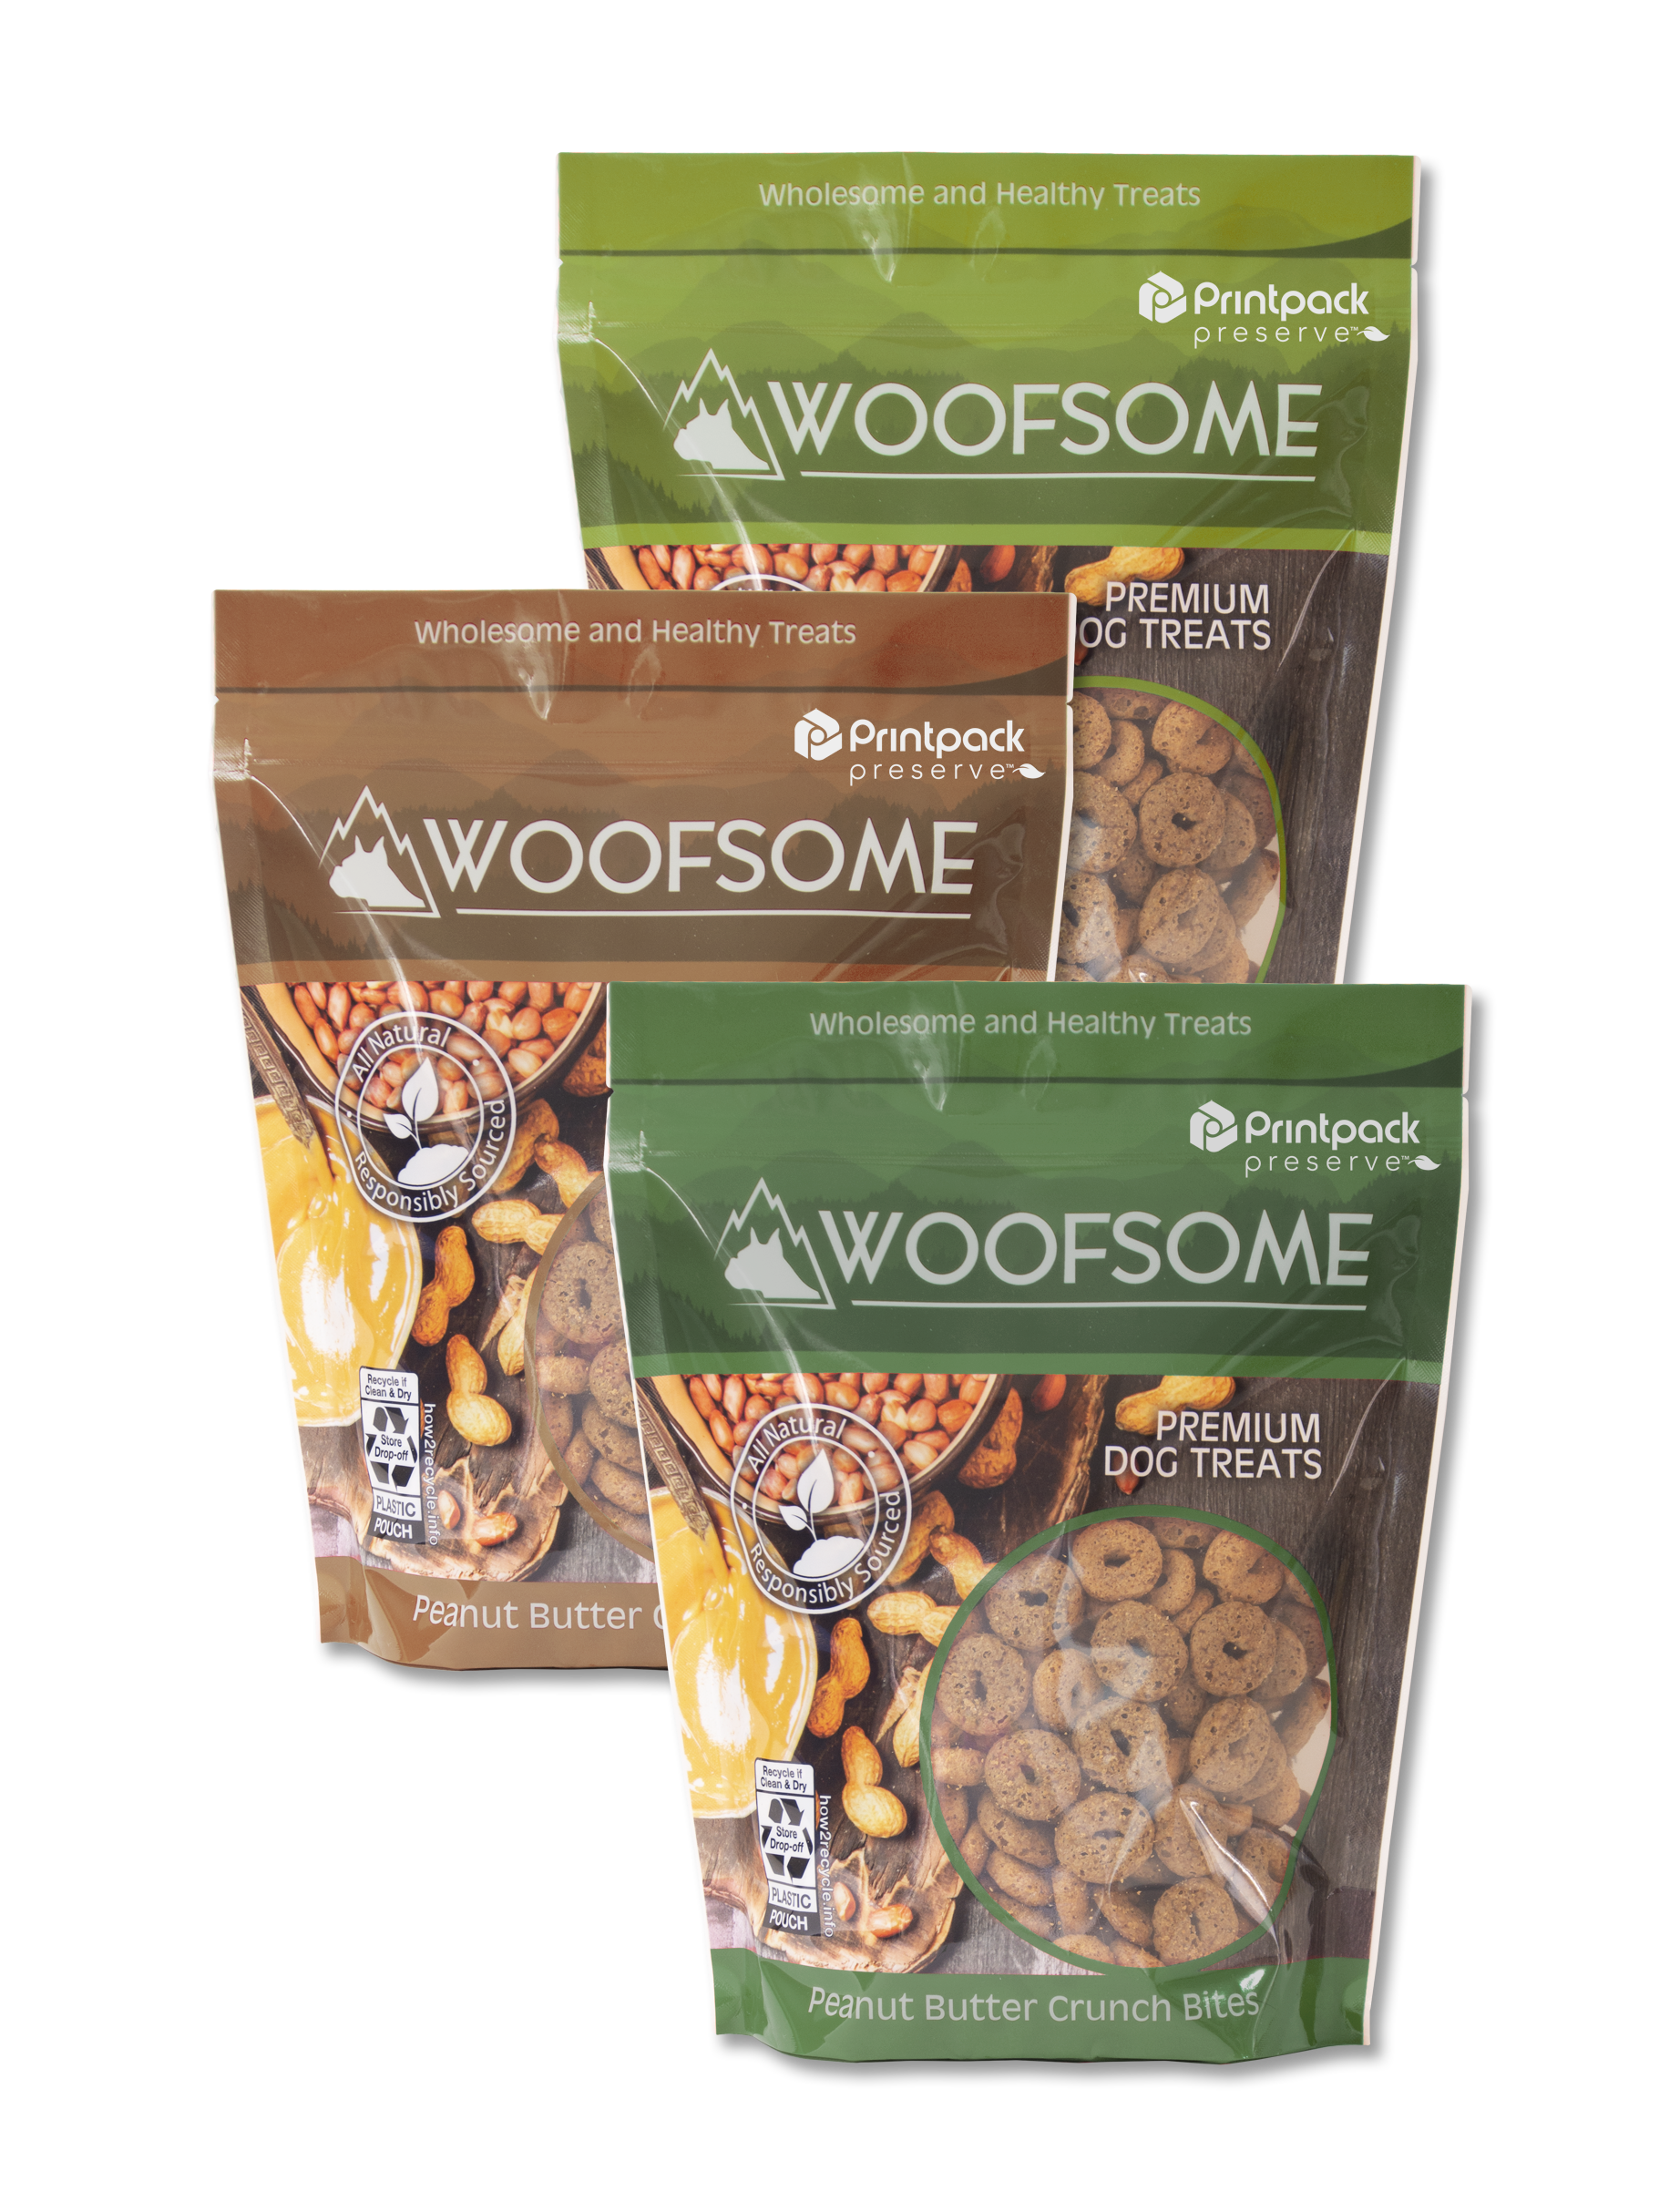 PE Pouch_Woofsome Dog Treats_Earth Tone Collage_3.1.21_sm_TM